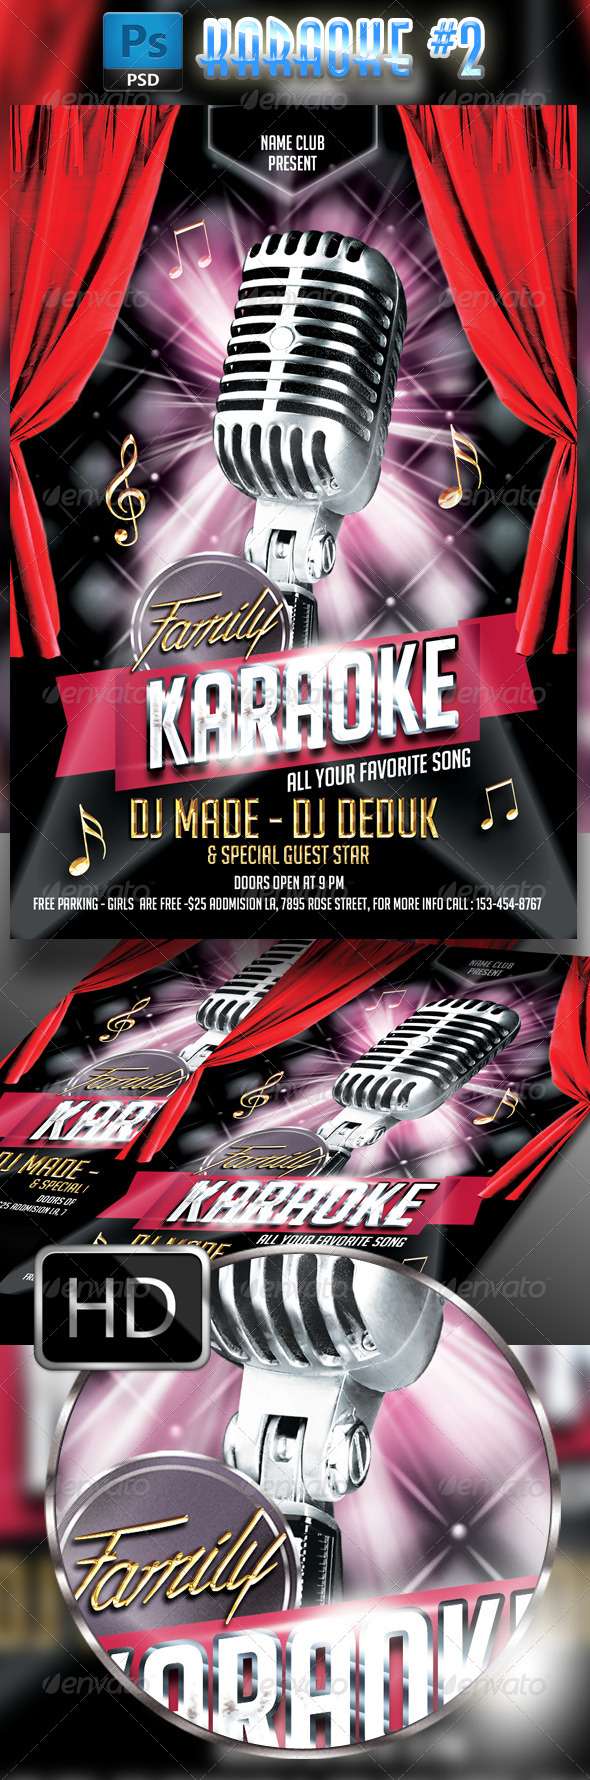 GraphicRiver Karaoke Flyer Template #2 7836787